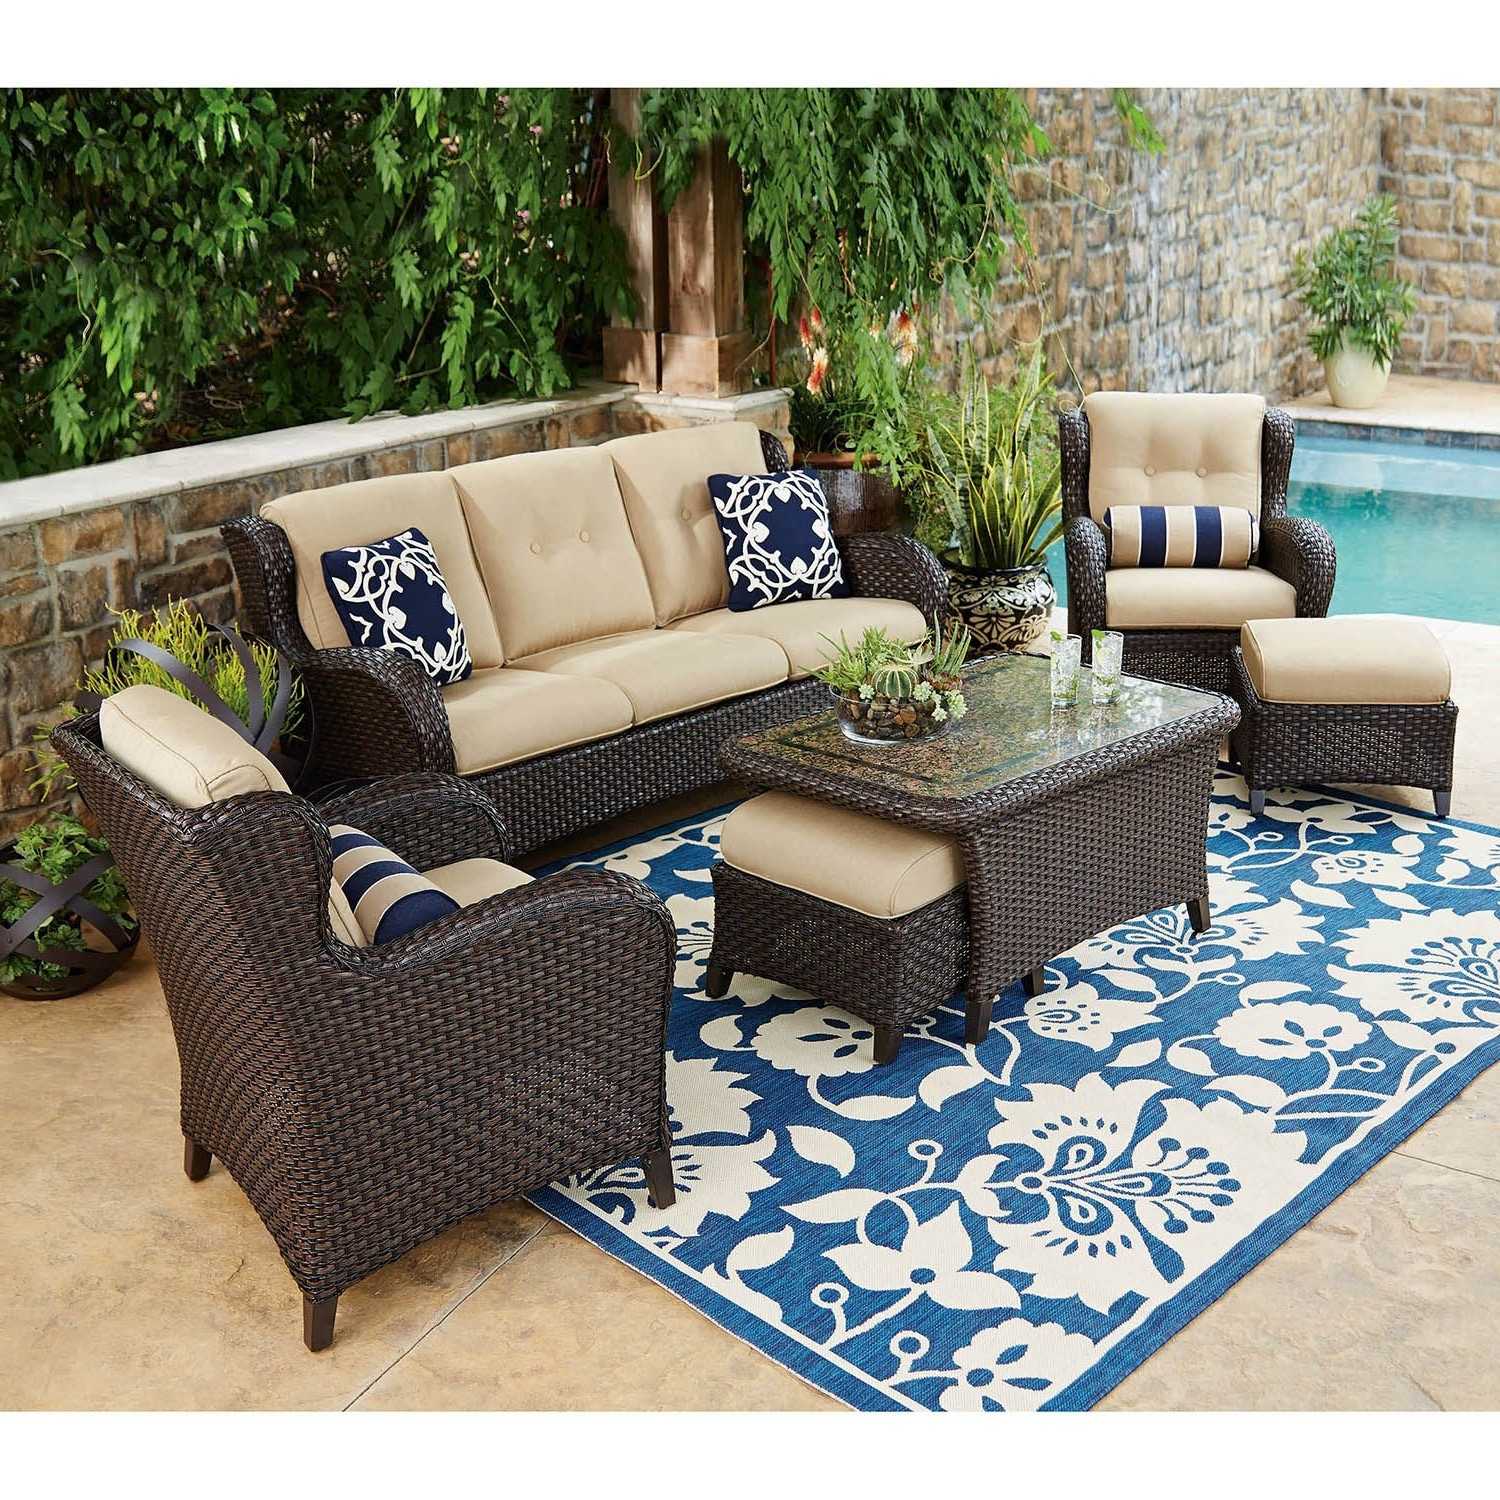 Best ideas about Sams Patio Furniture . Save or Pin 2019 Best of Sam s Club Outdoor Chaise Lounge Chairs Now.